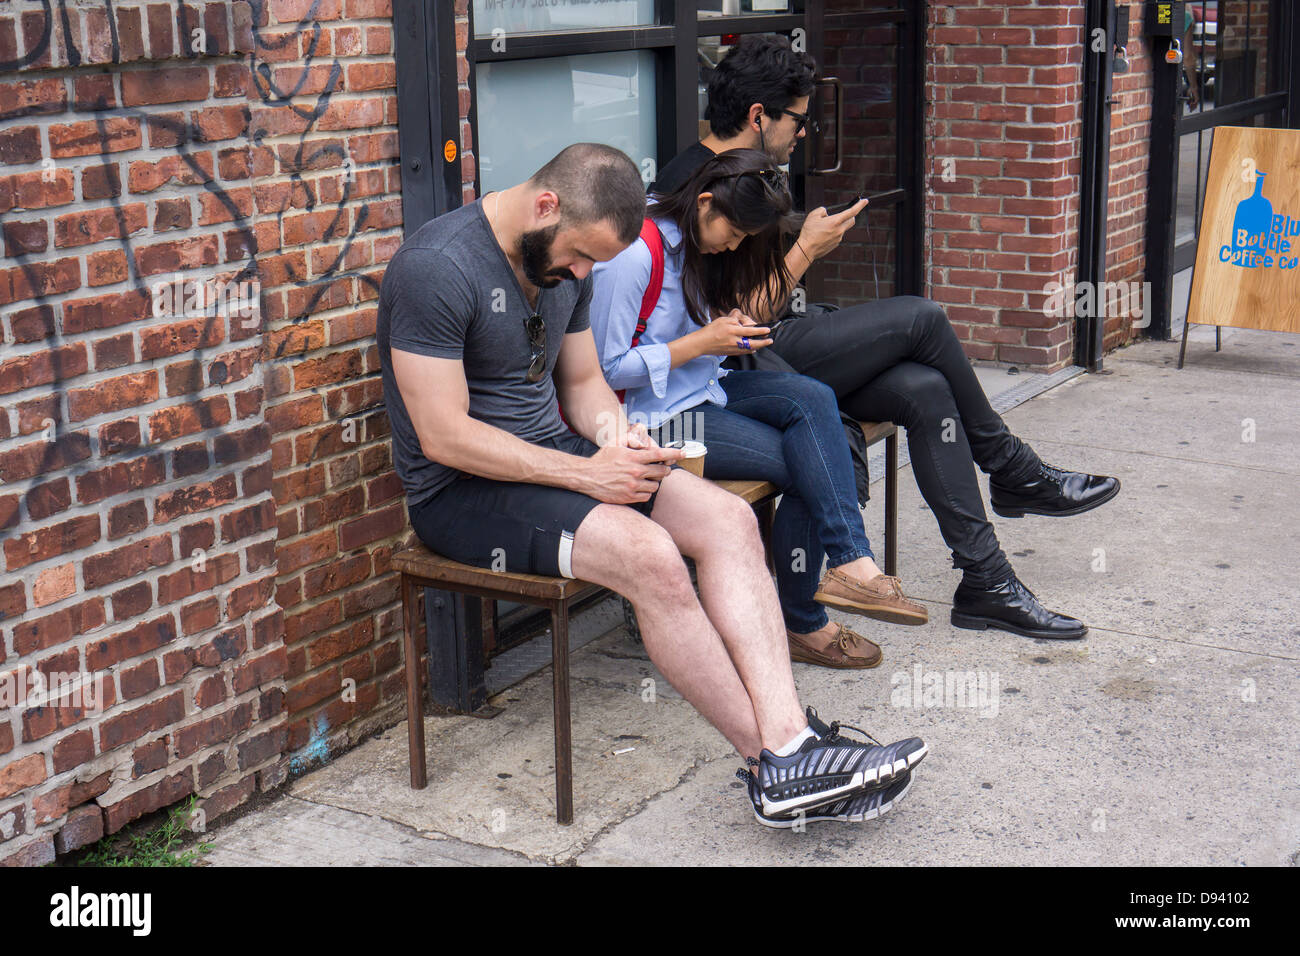 Hipsters preoccupied with their smartphones outside a coffee shop in the trendy hipster Williamsburg neighborhood - Stock Image